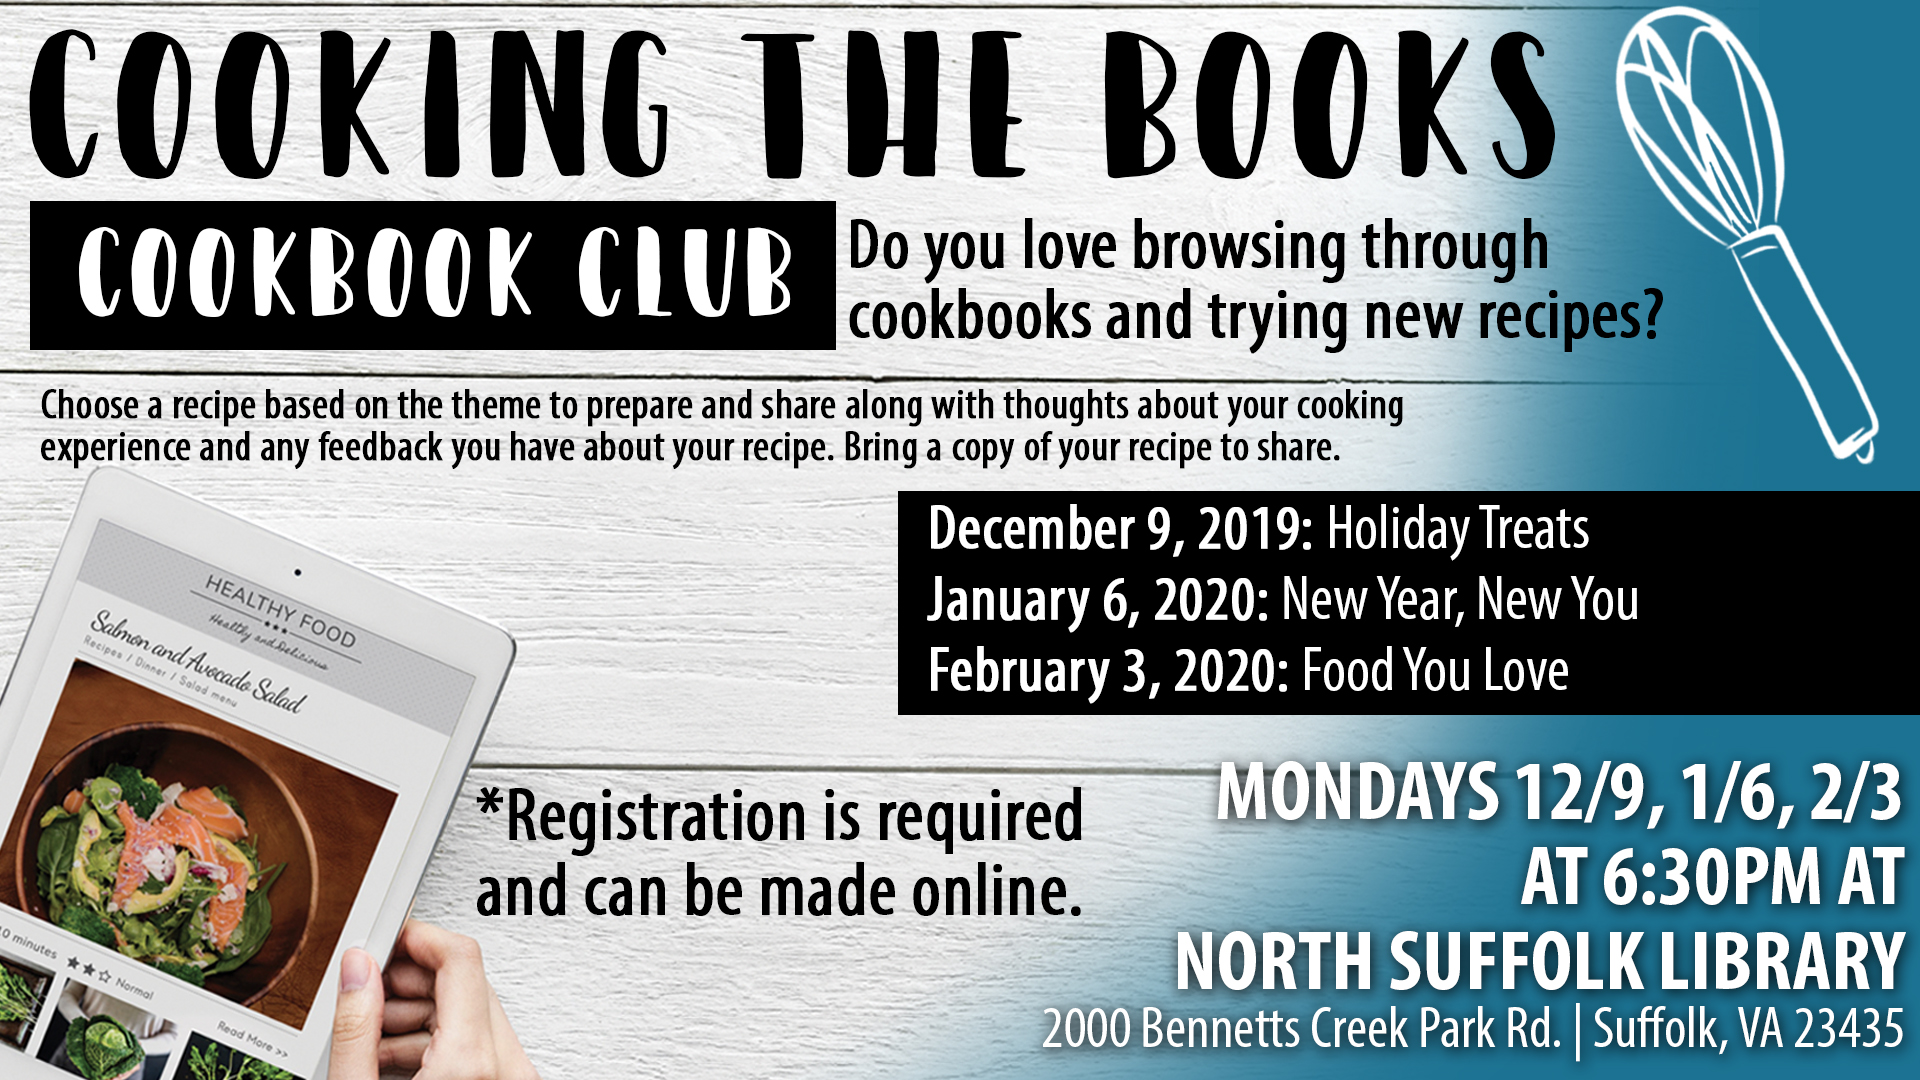 Cooking the Books, Book Club